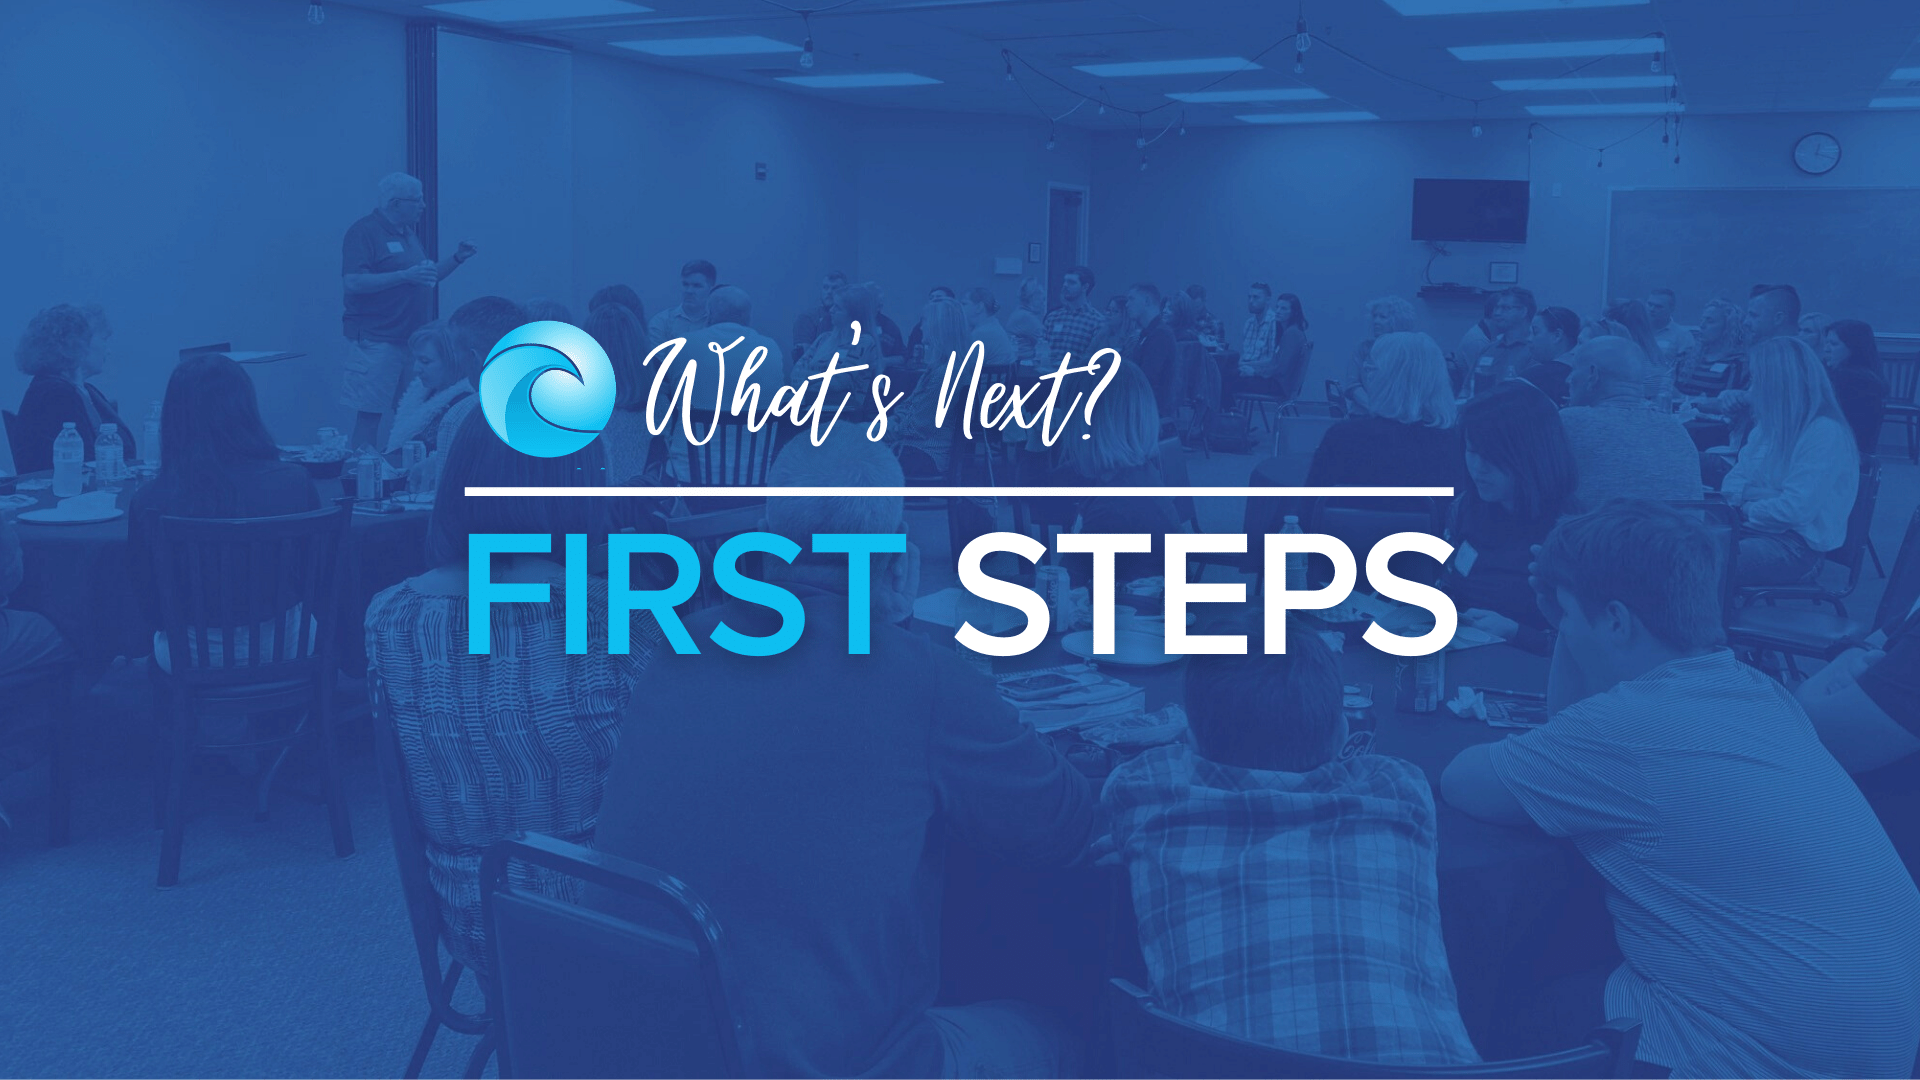 WEBFIRST STEPS 2020 1 | Community Life Church, Gulf Breeze, FL |